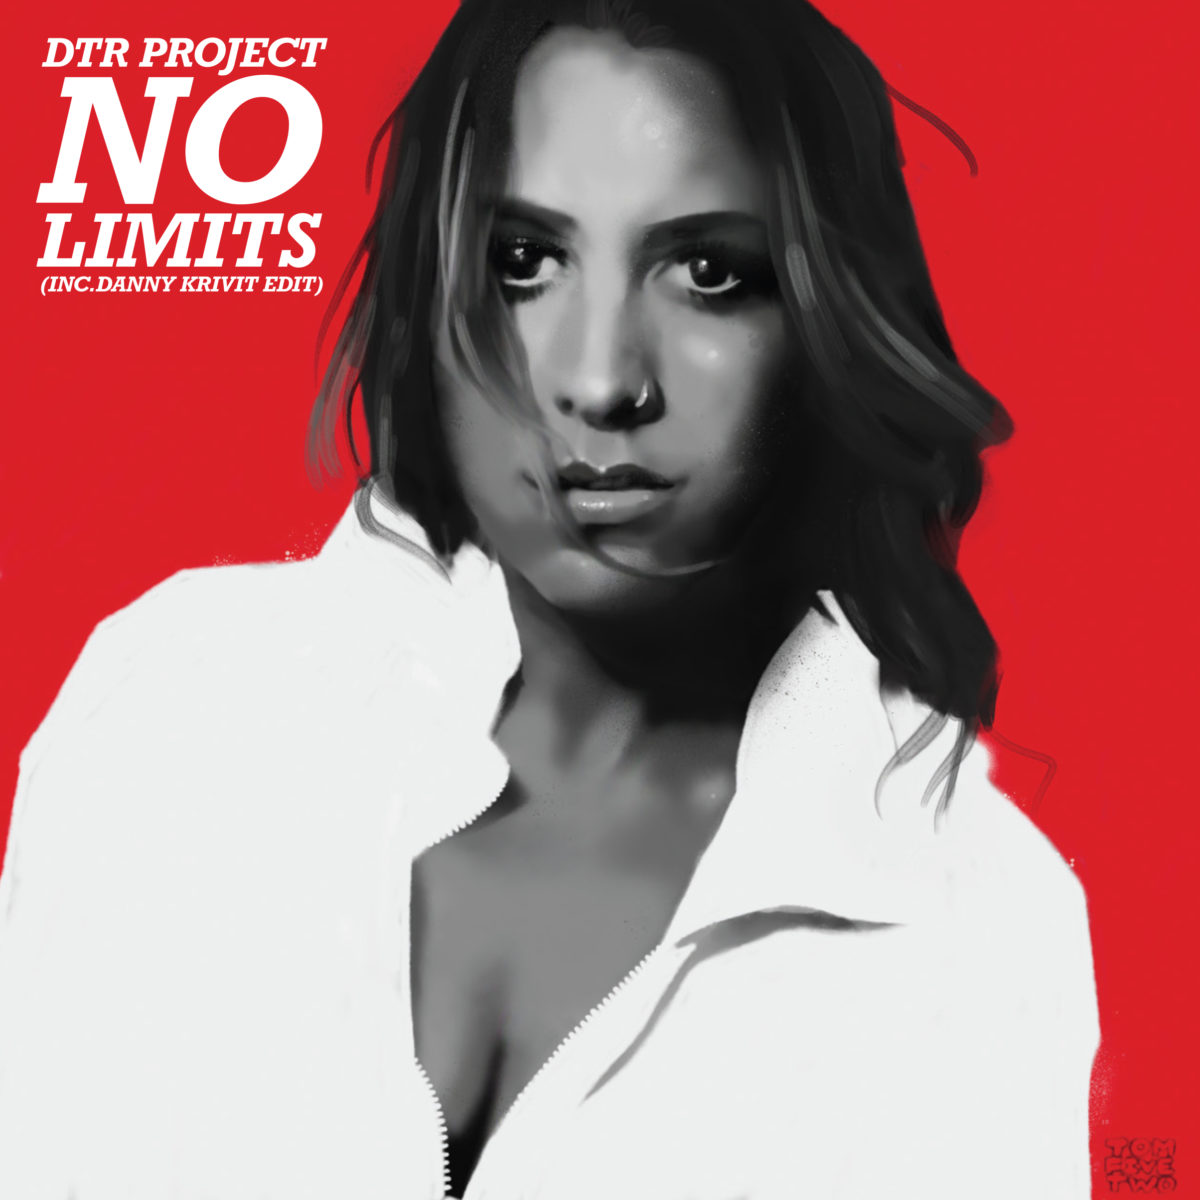 Artwork of No Limits by DTR Project feat Rae